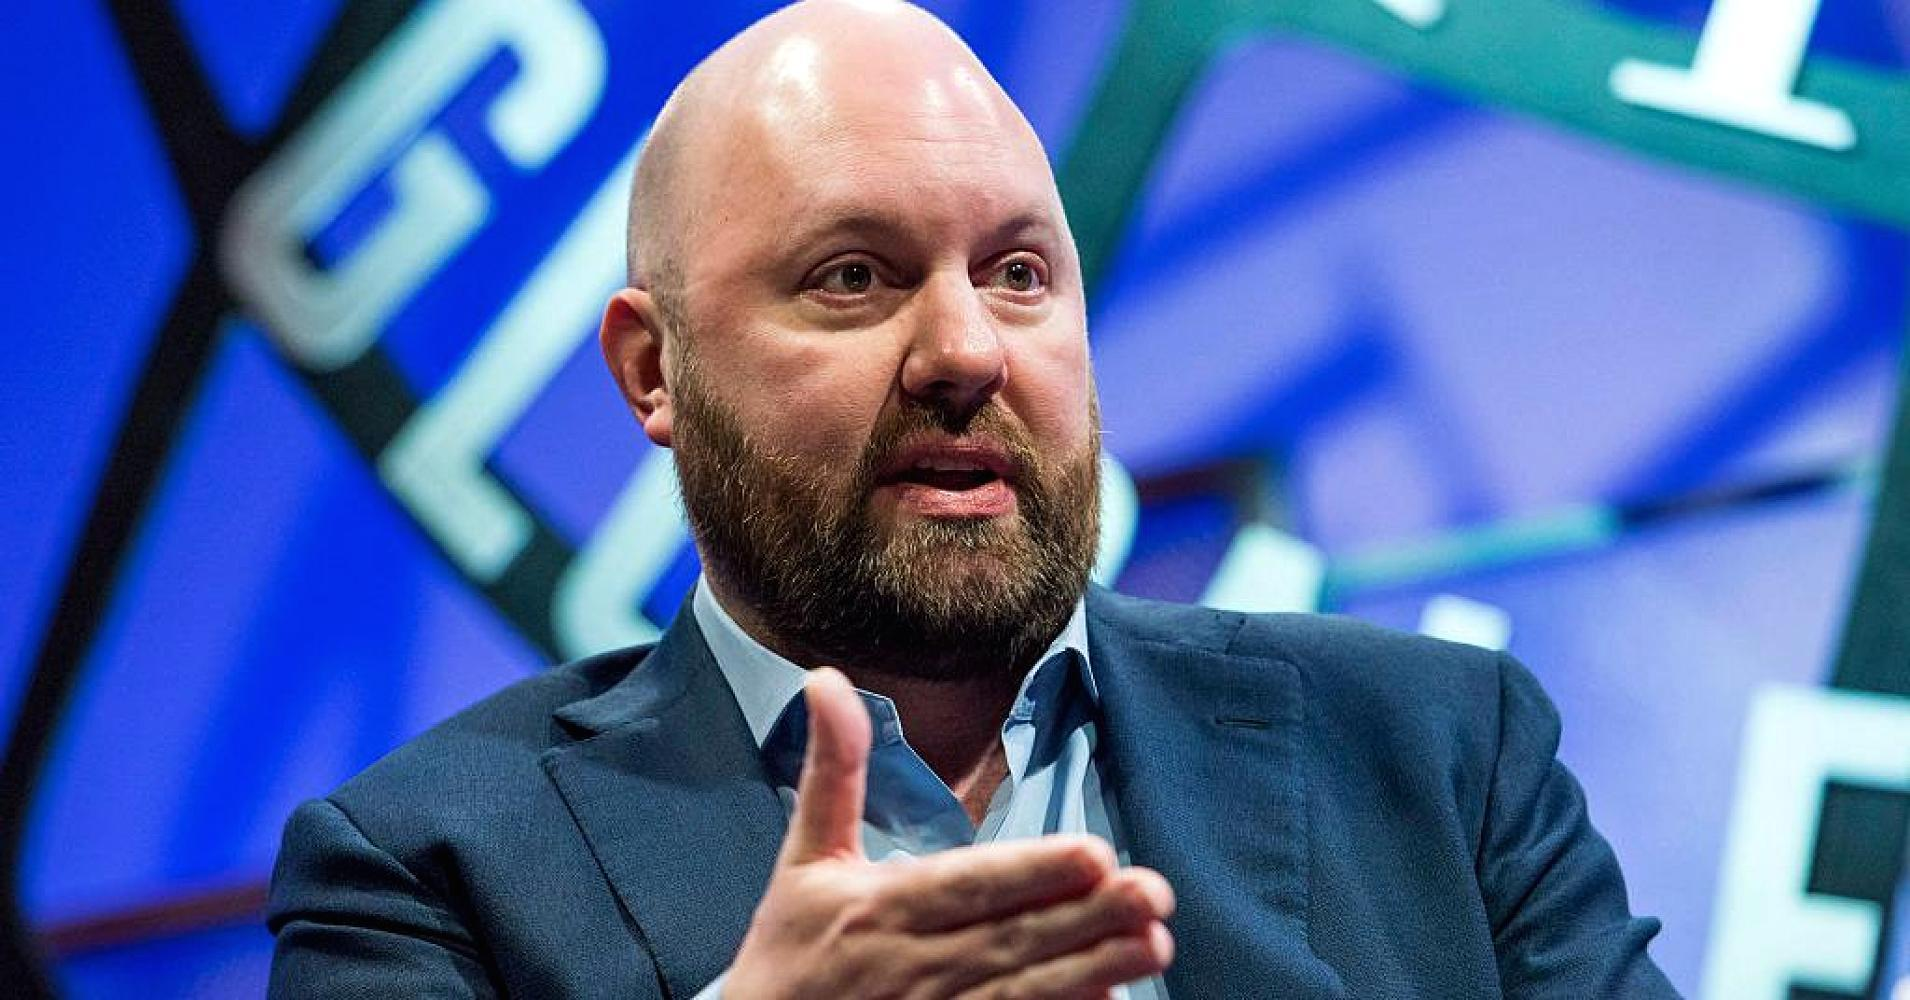 Top VC Andreessen under fire over India comments